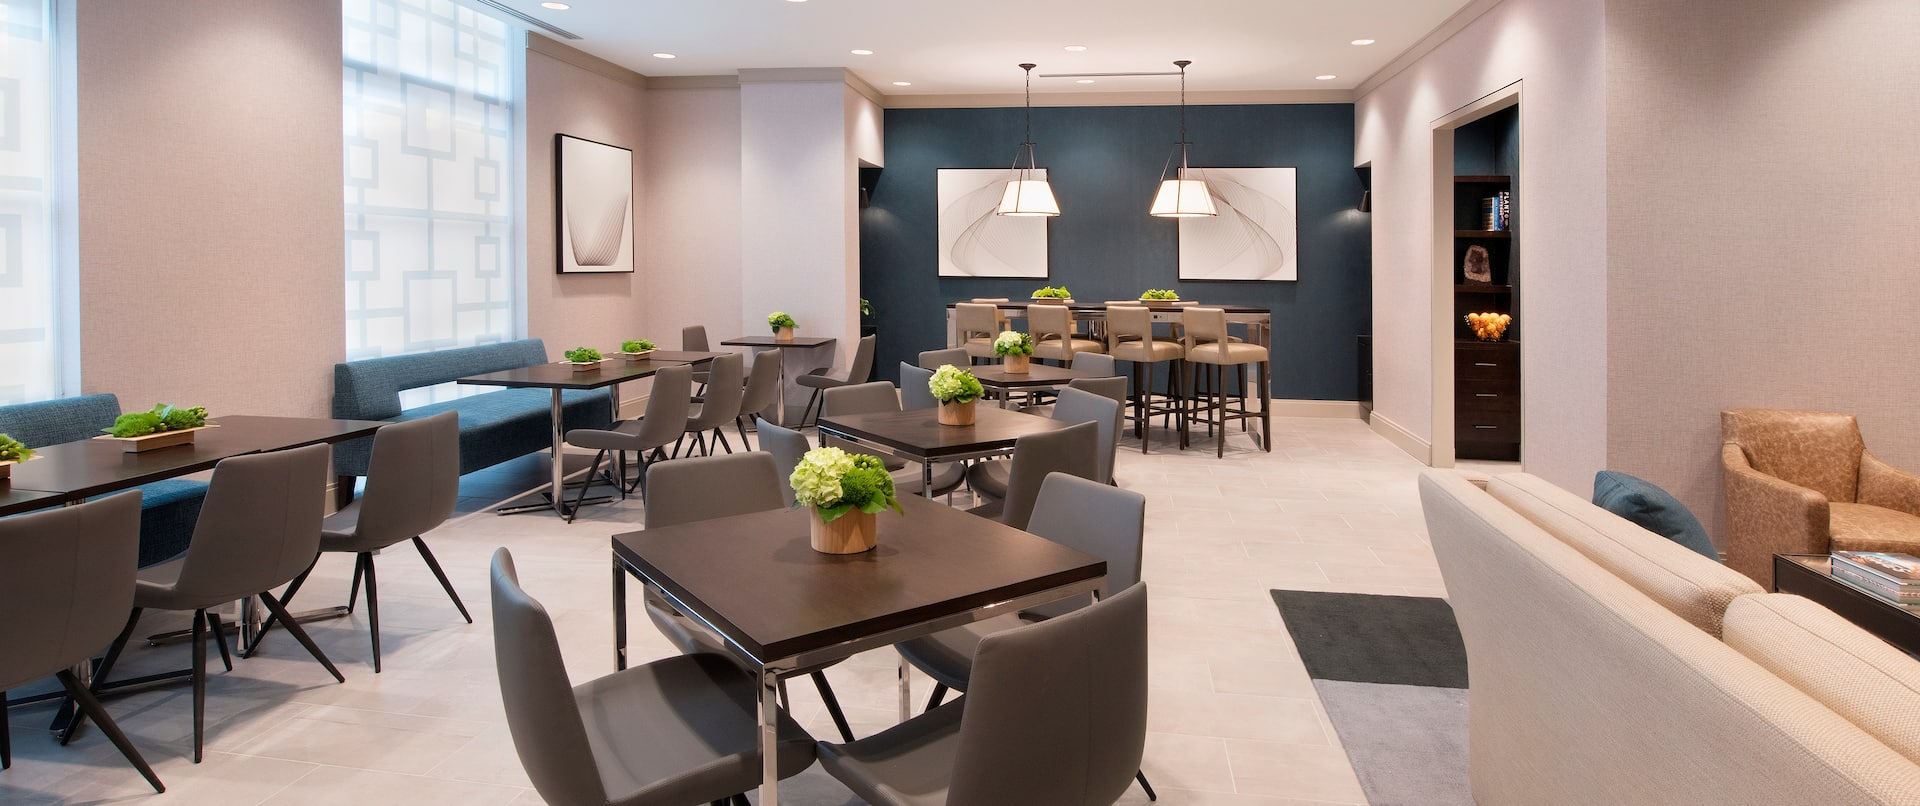 Executive Lounge with Casual and Dining Seating